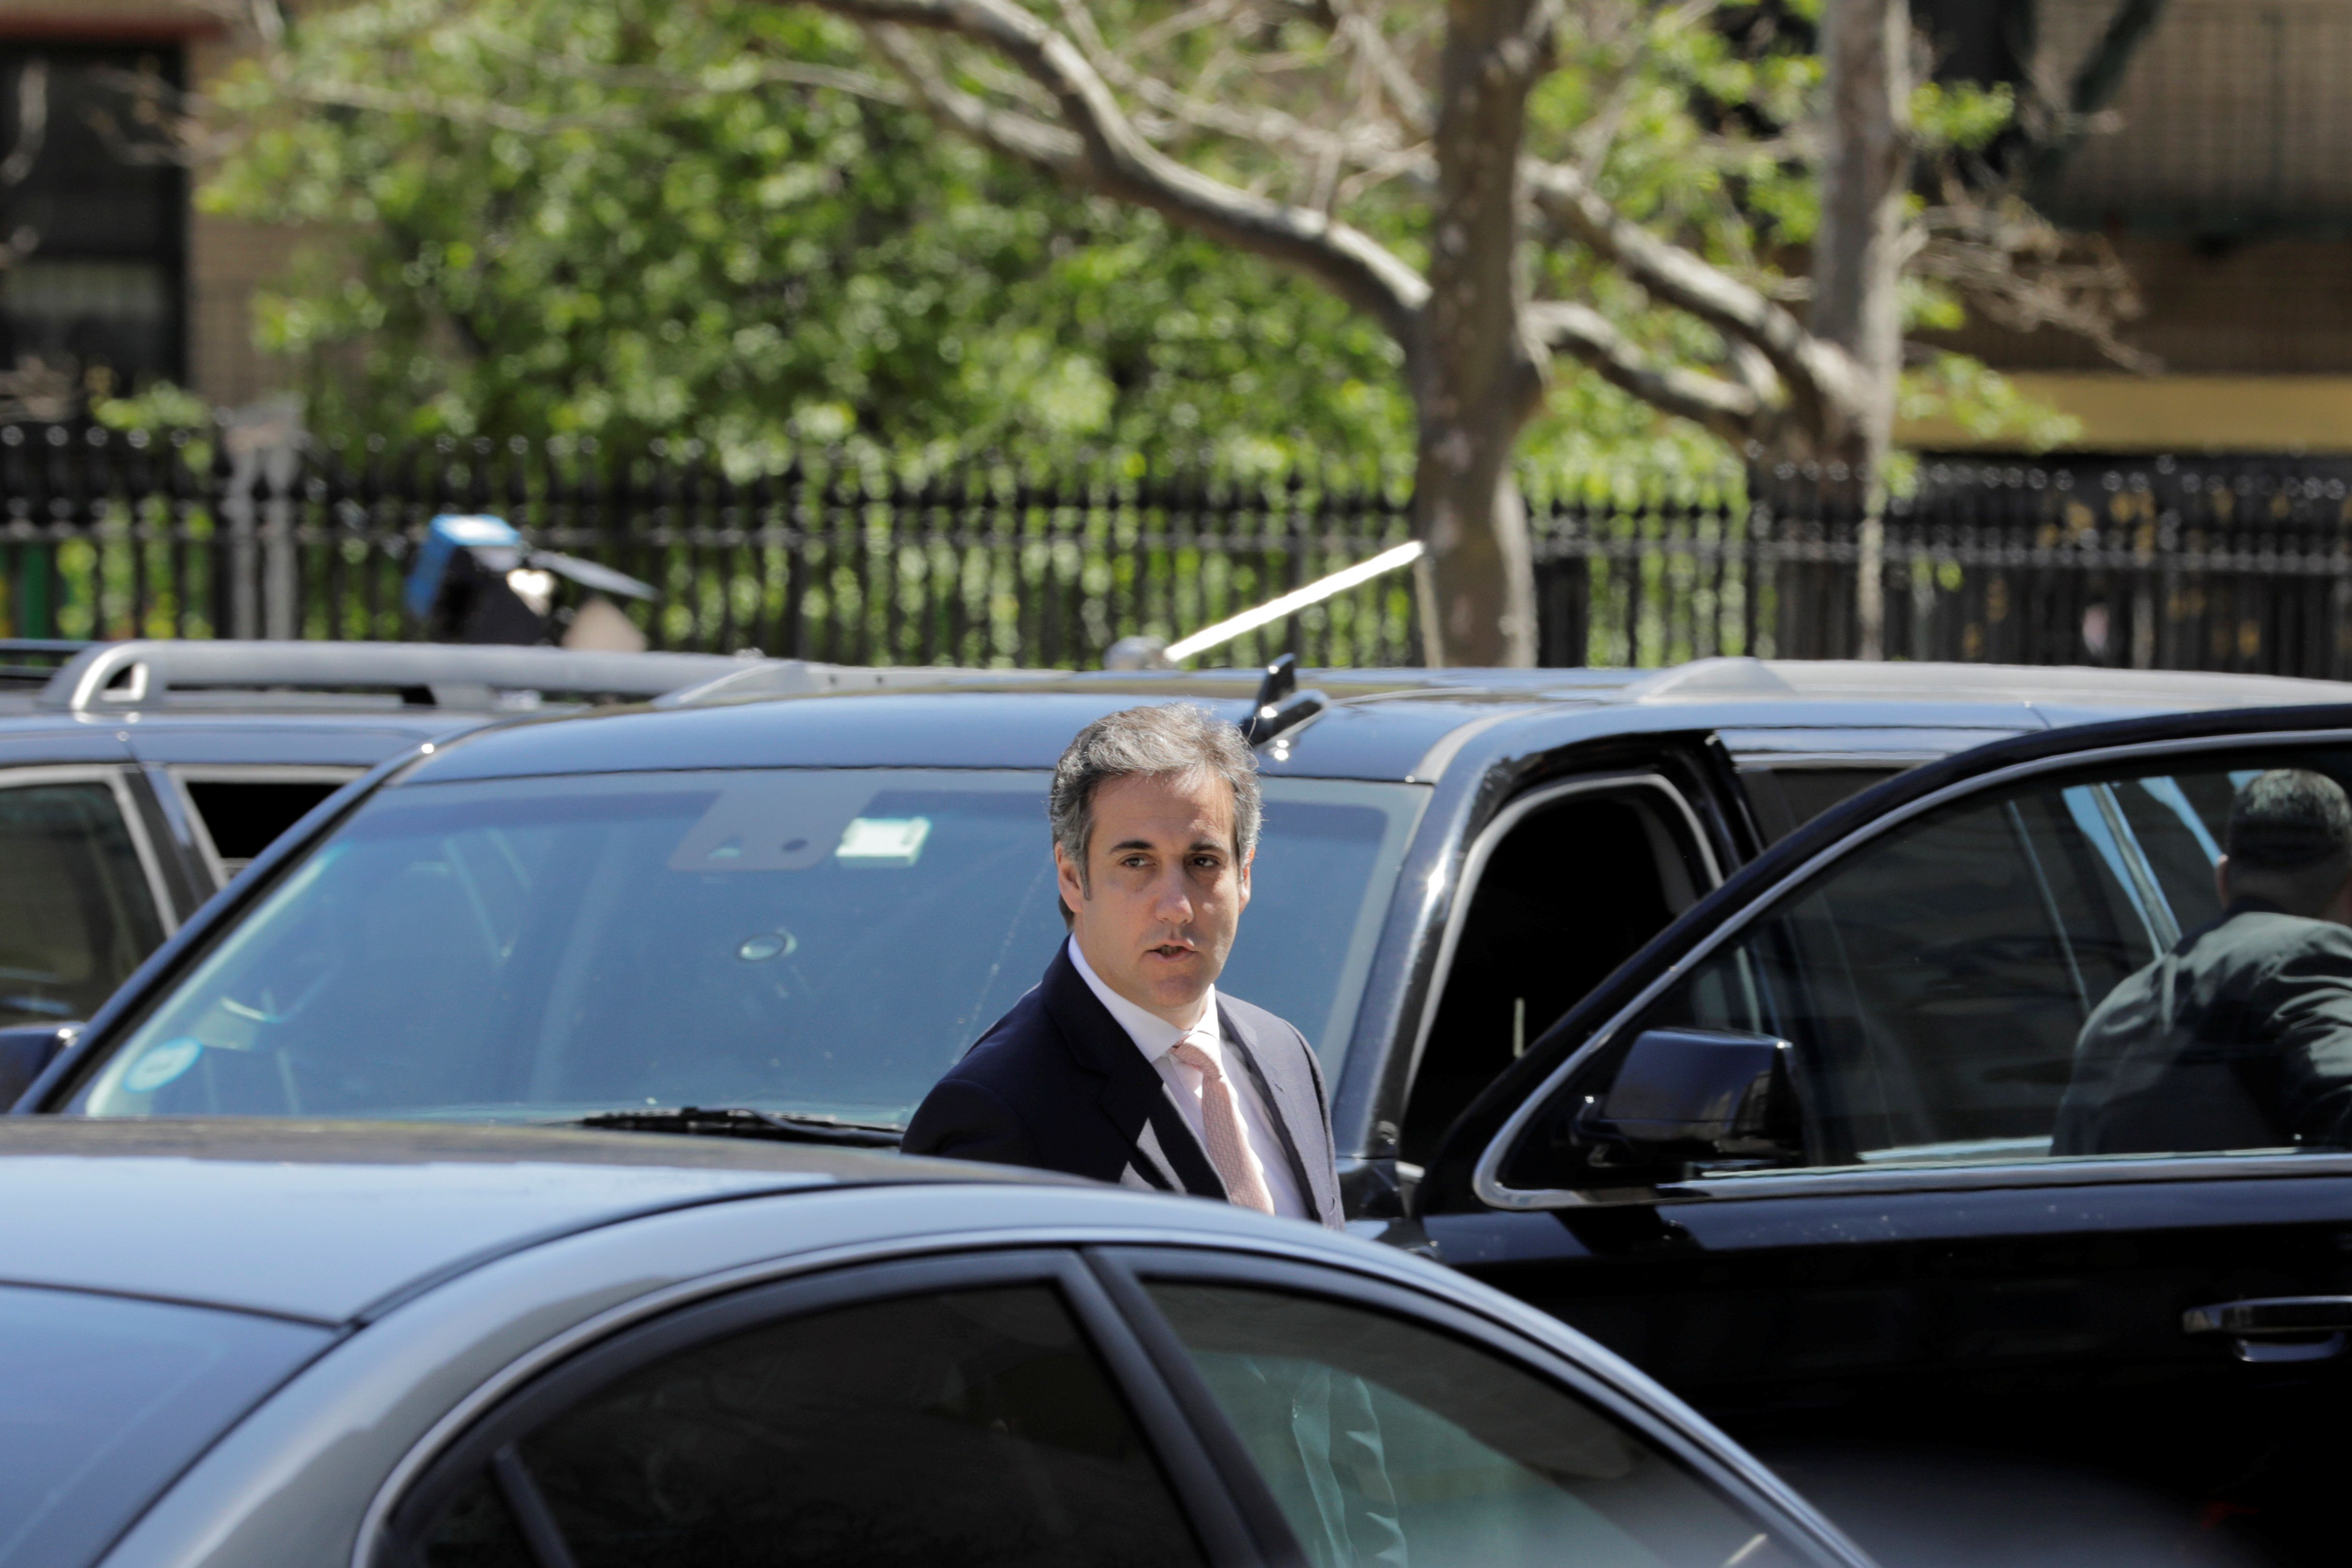 Reports: Michael Cohen Accepted $500,000 From Firm Tied To Russian Oligarch